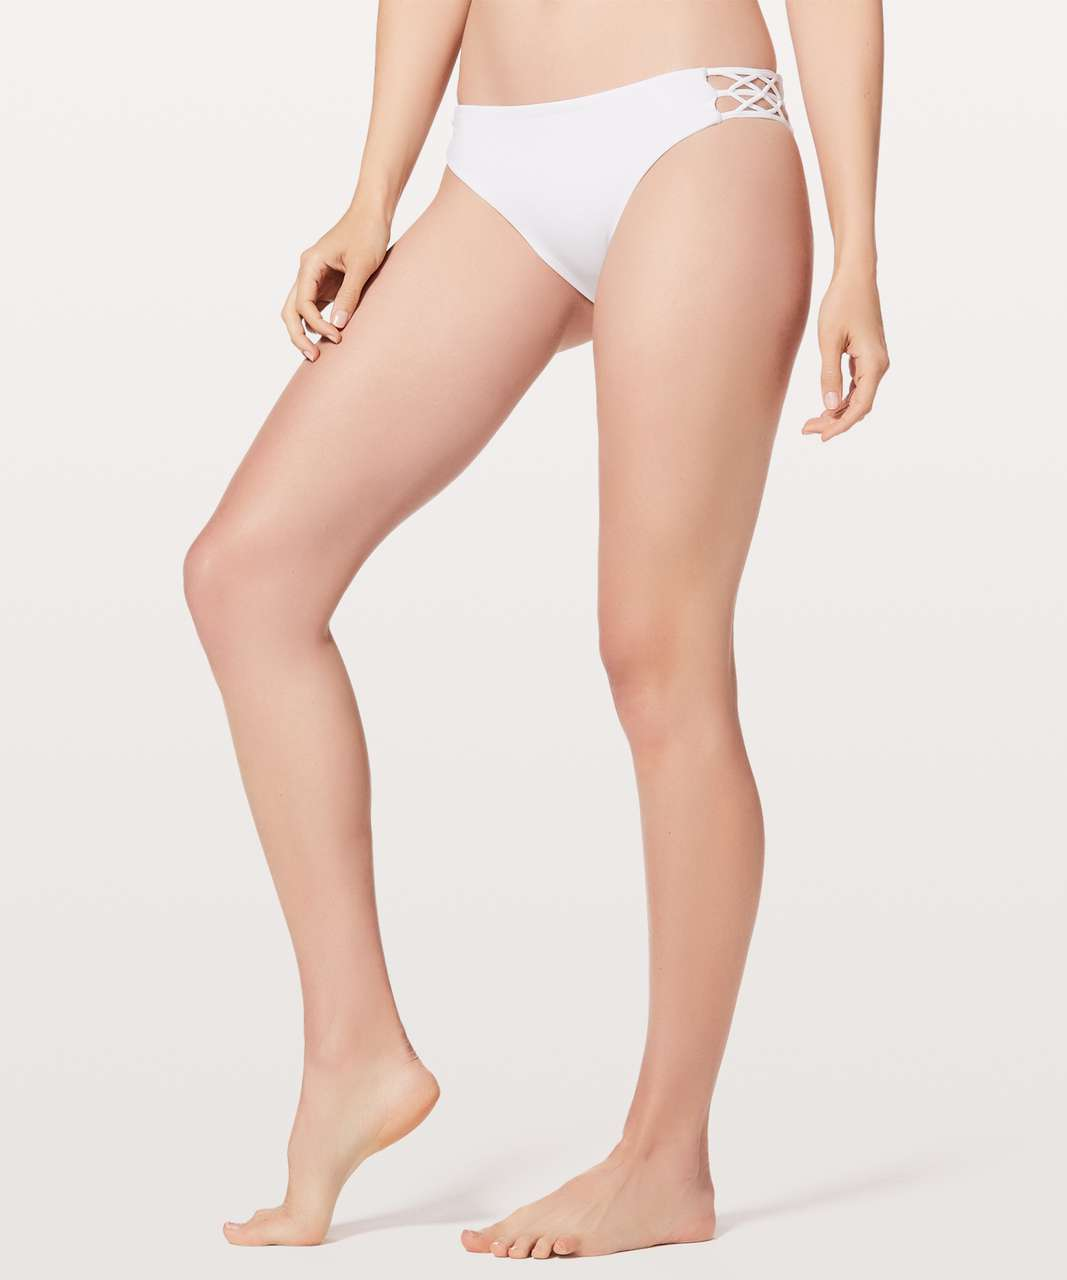 Lululemon Coastline Bottom - White